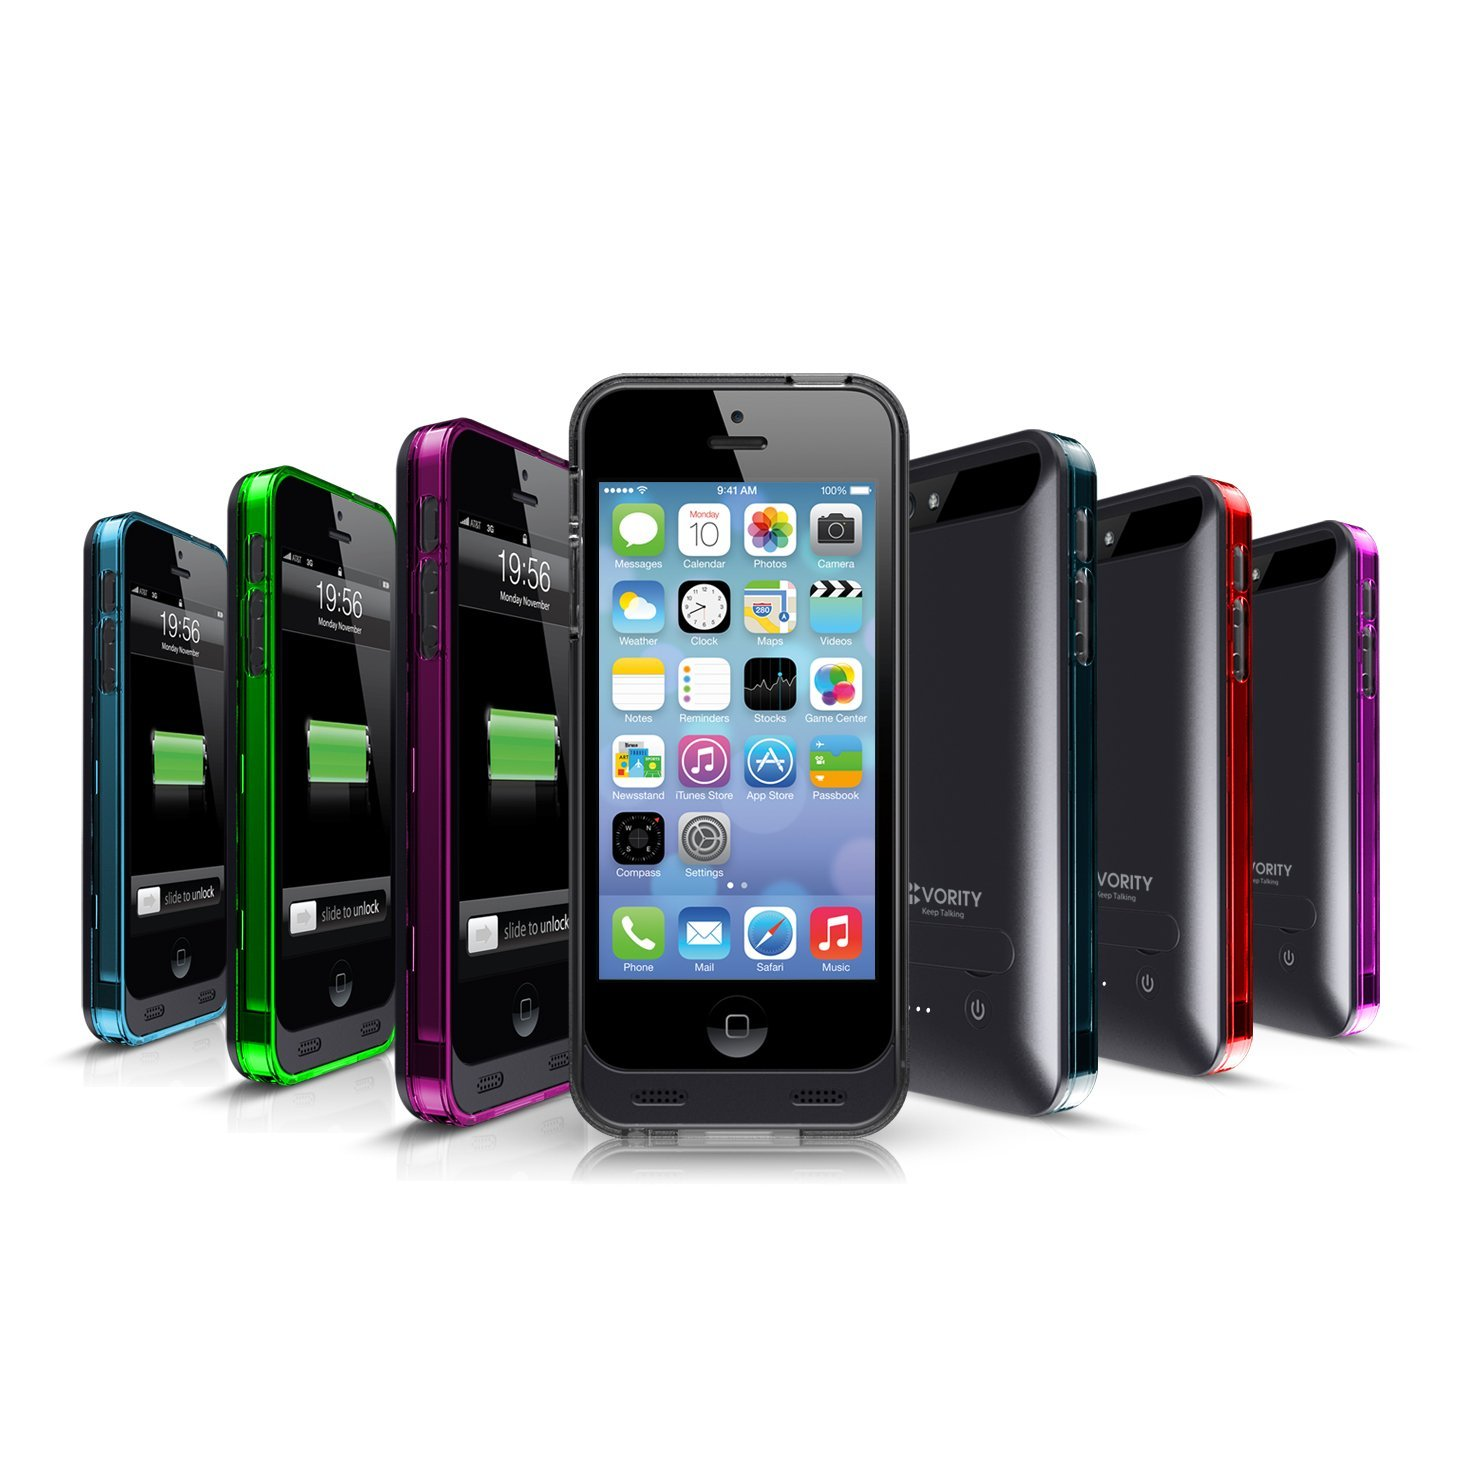 Vority X5S iPhone 5/5S Battery Charger Case [Black] Built-in 2400mAh Rechargeable External Back Up Power Bank - Low Profile & Slim Design/Landscape Kickstand, Includes 7 Colourful Bumper Frames: Blue, Red, Slate, Green, Smoke, Pink & Purple. Fit All Version of iPhone 5/iPhone 5S